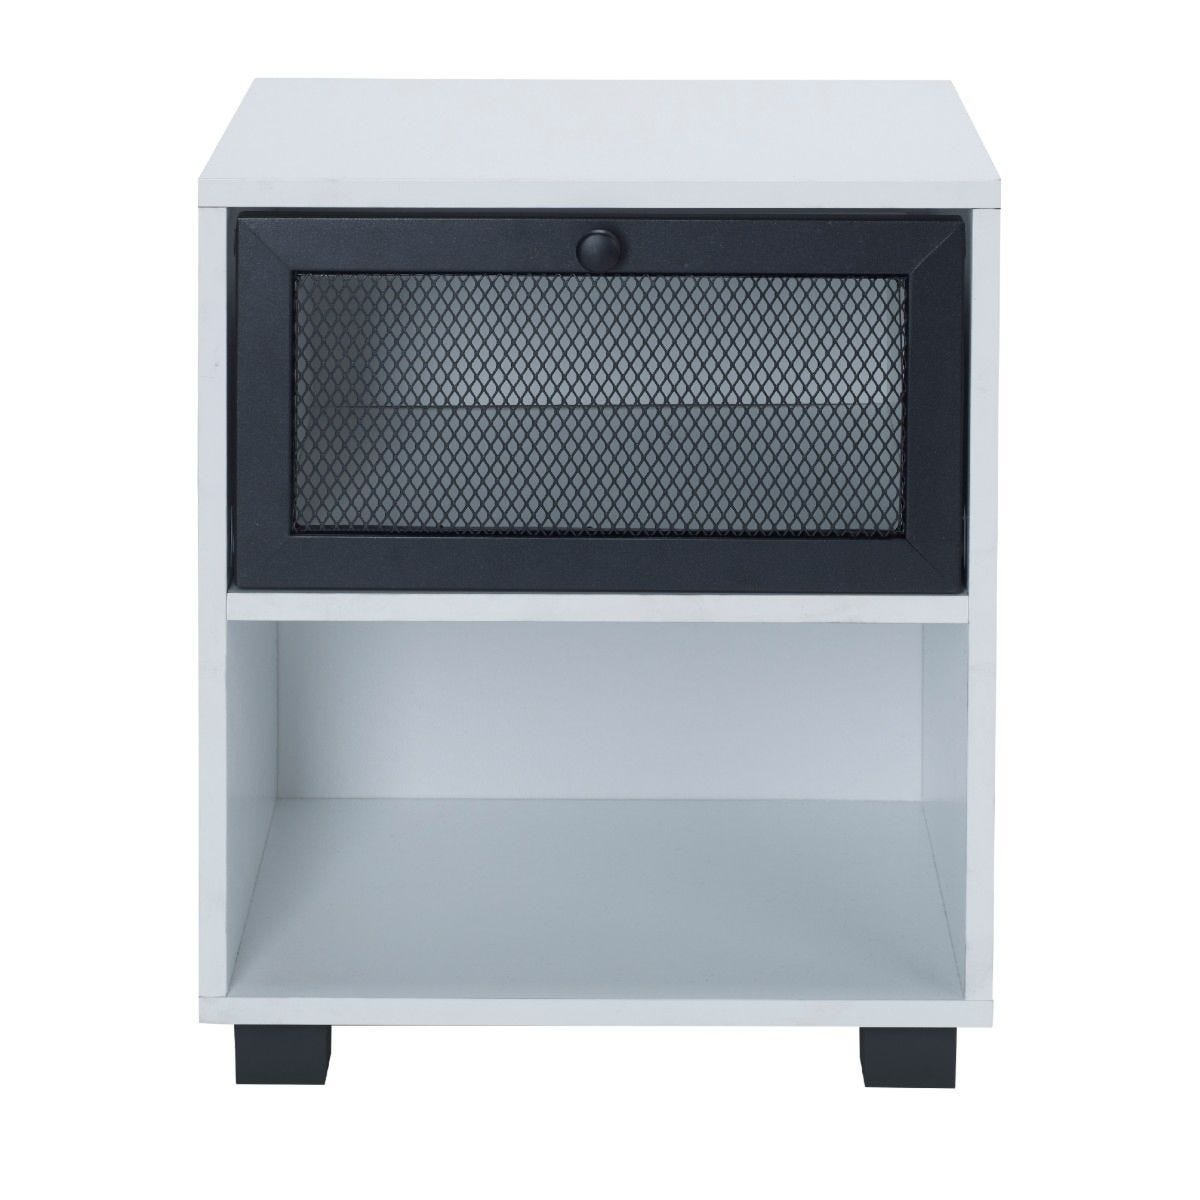 White 1 Draw Bedside Cabinet With Black Mesh Metal Drawers